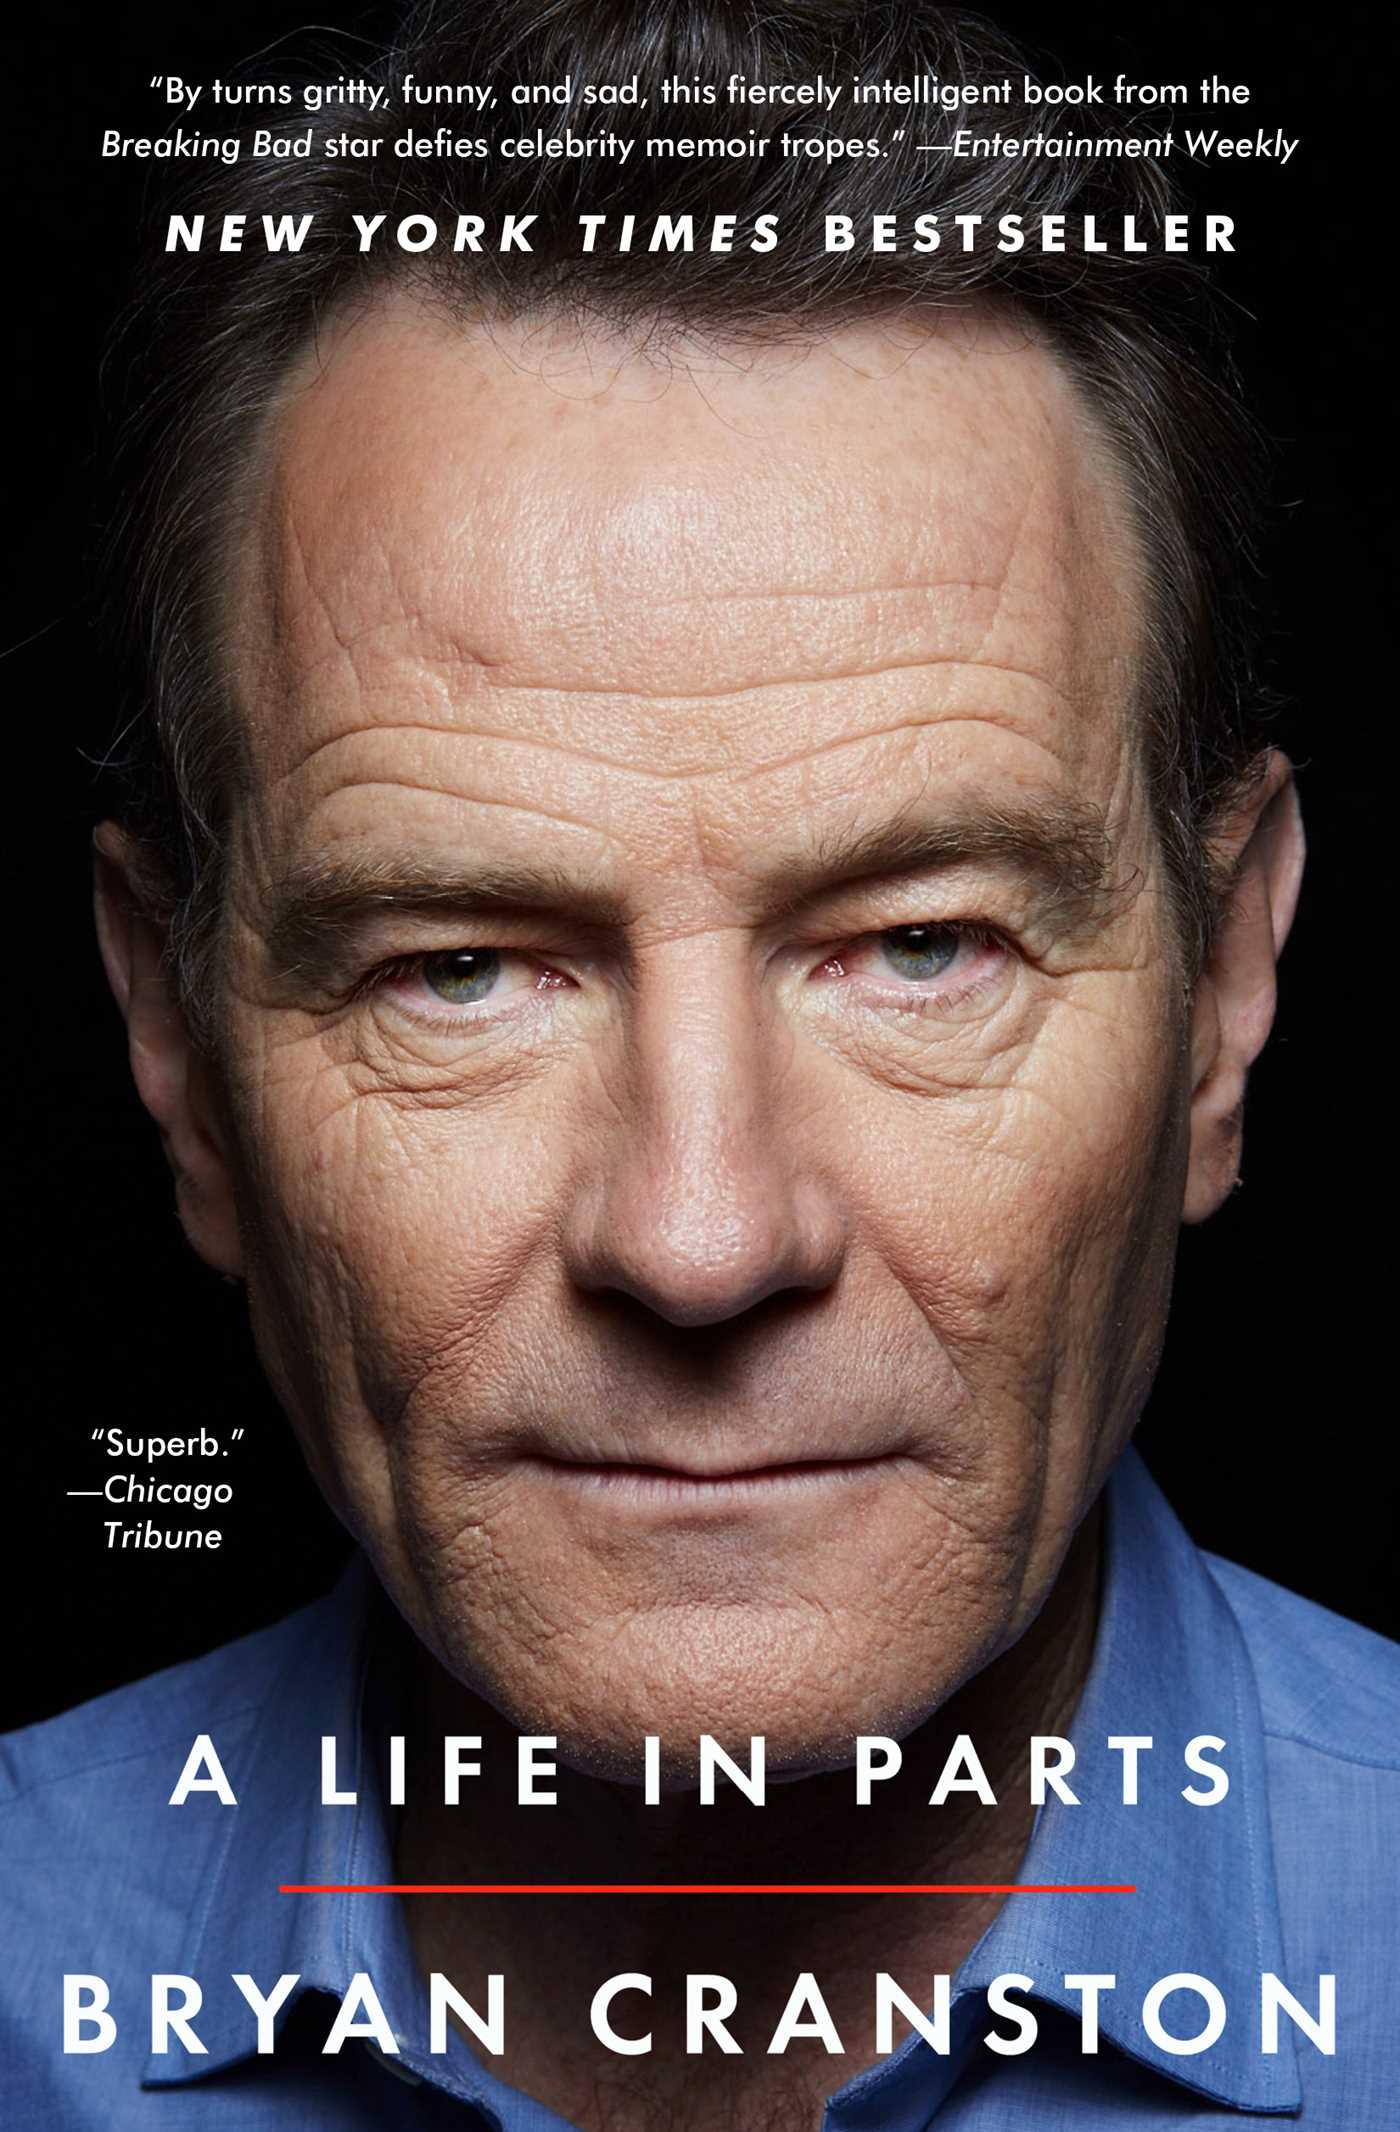 A life in parts 9781476793887 hr